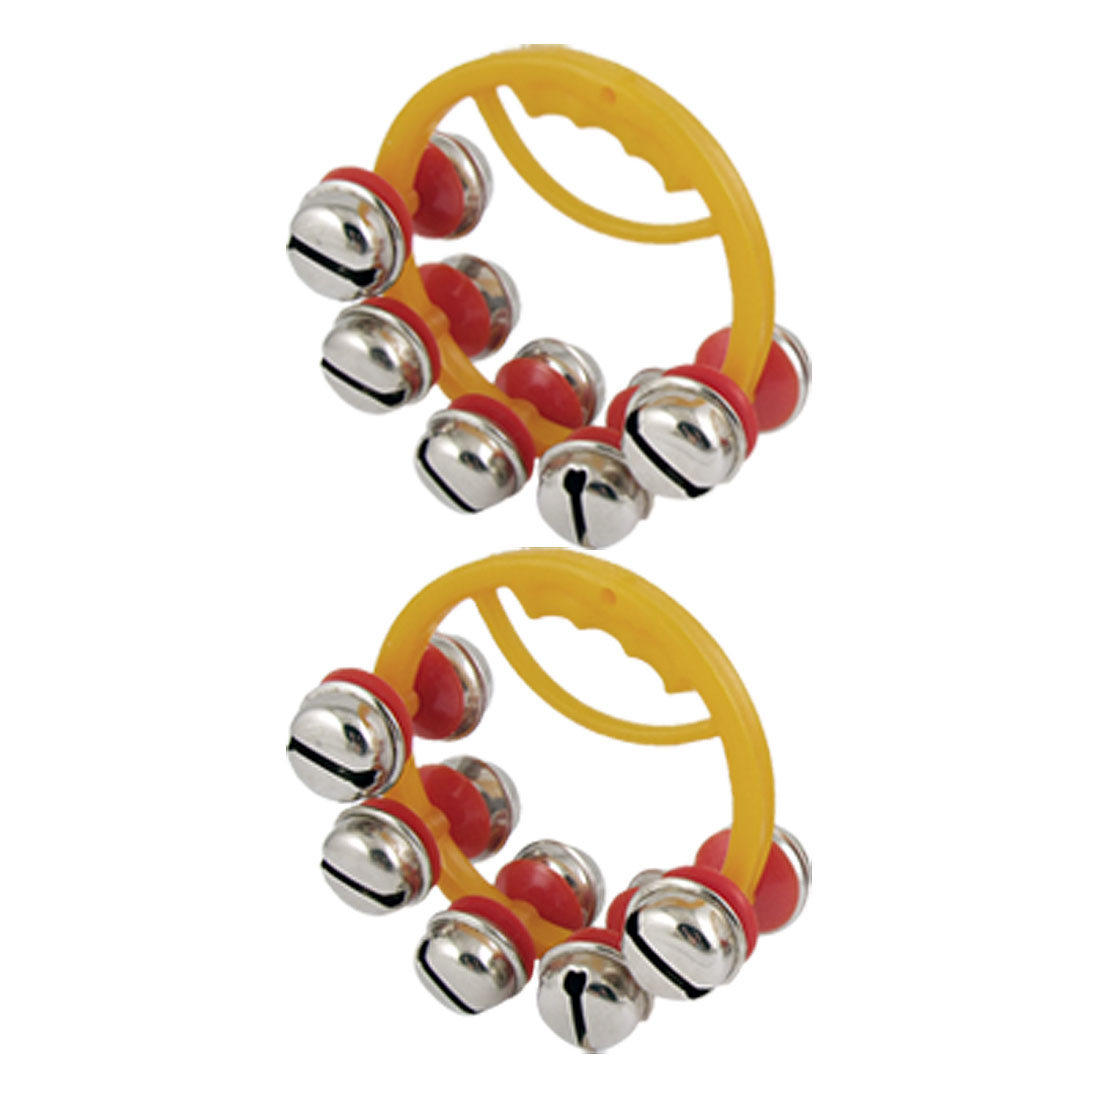 "2 Pcs 3"" Dia Frame 10 Metal Bell Tambourine Handbell for Child"